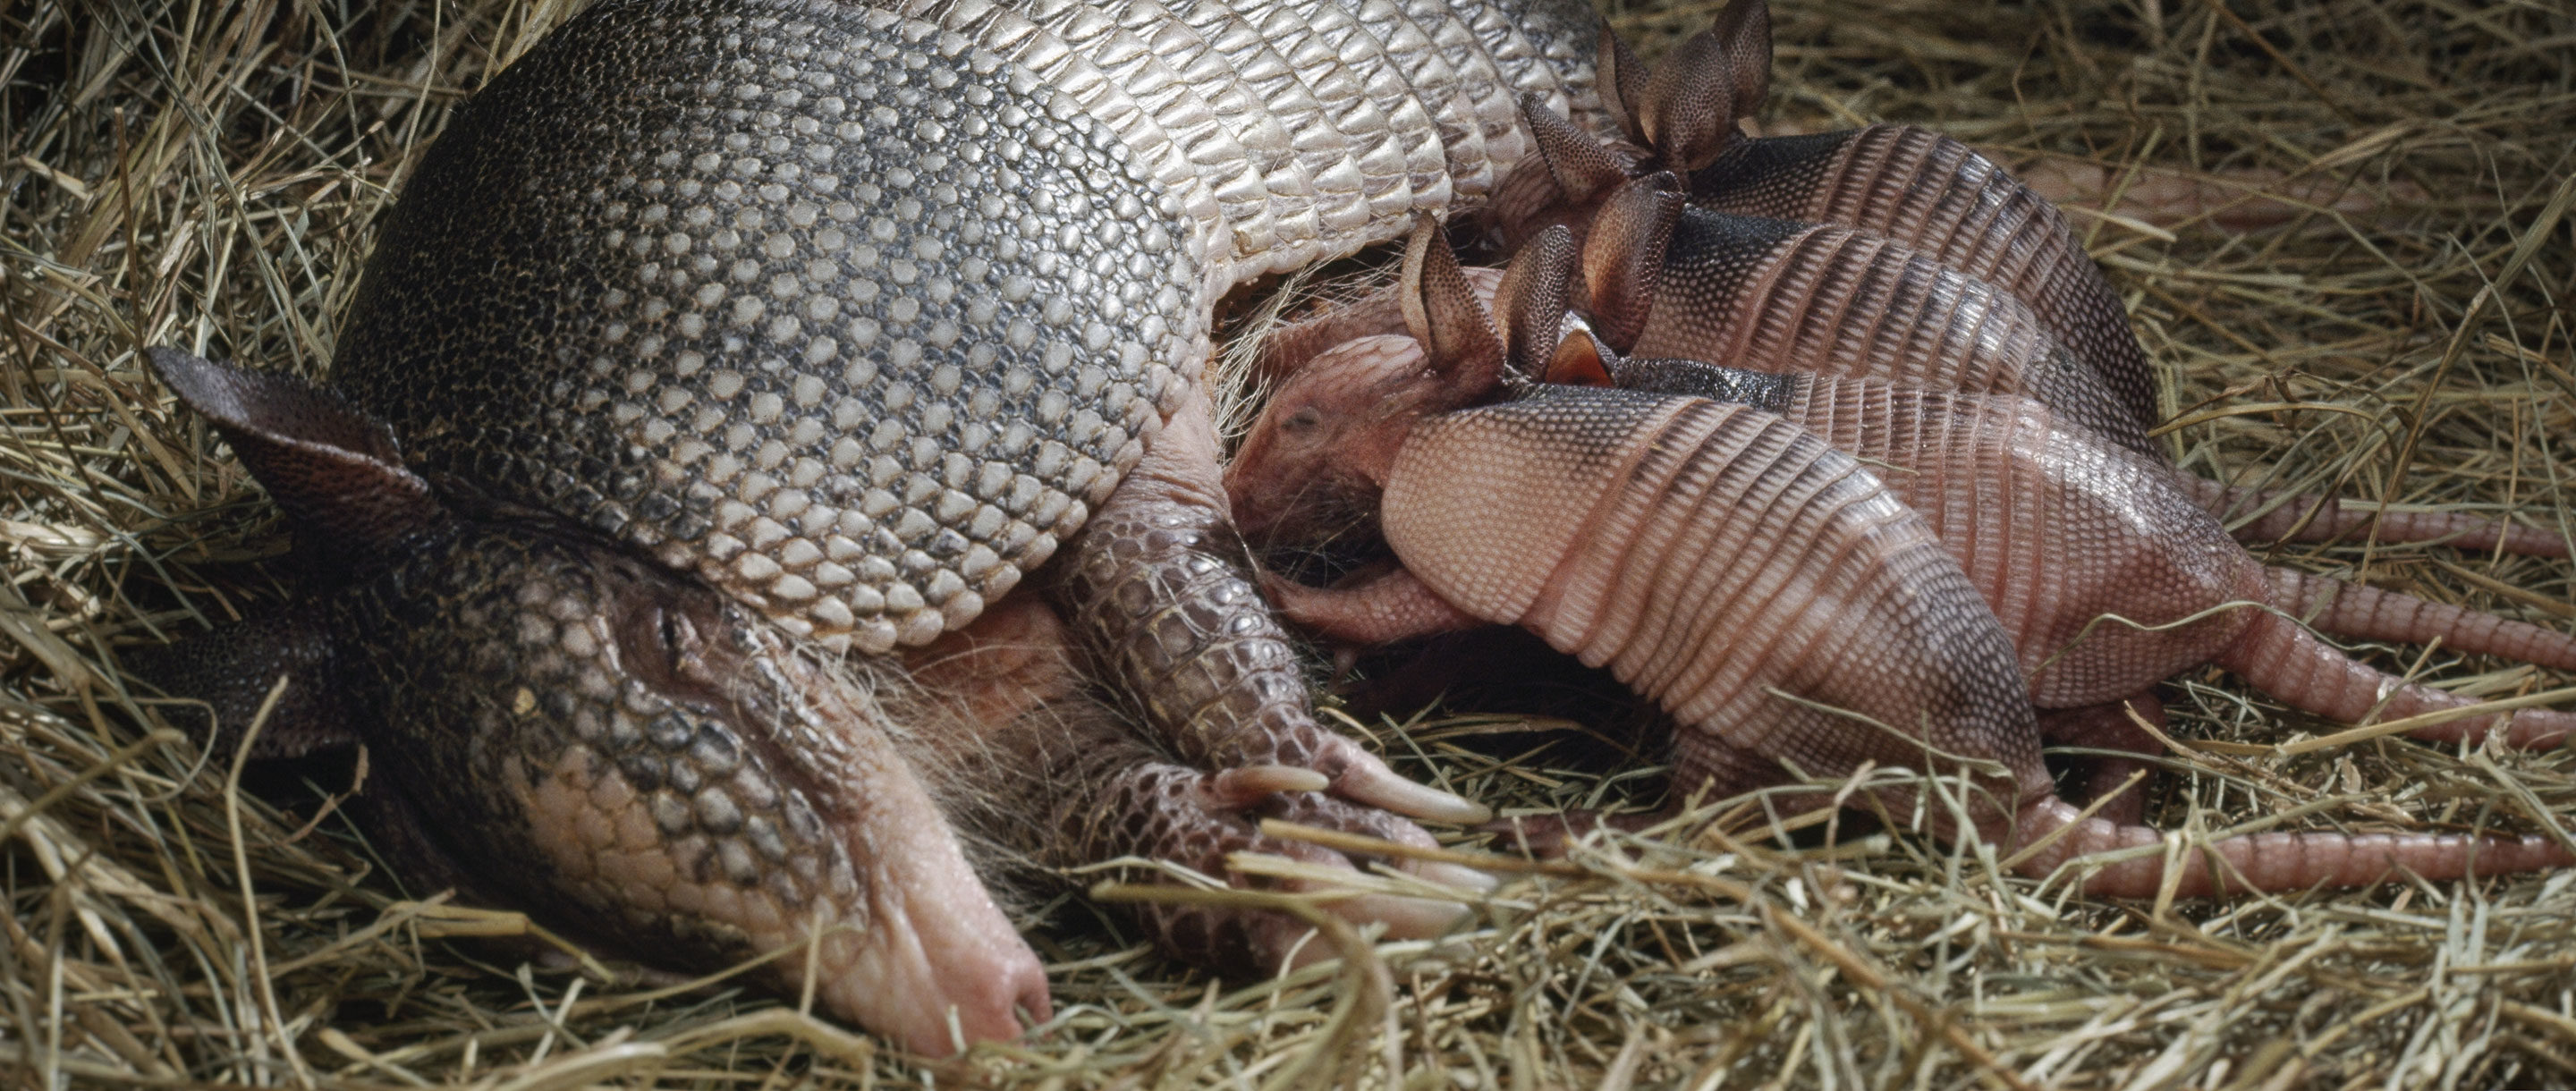 A mother armadillo, lying on her side, nurses four baby armadillos.